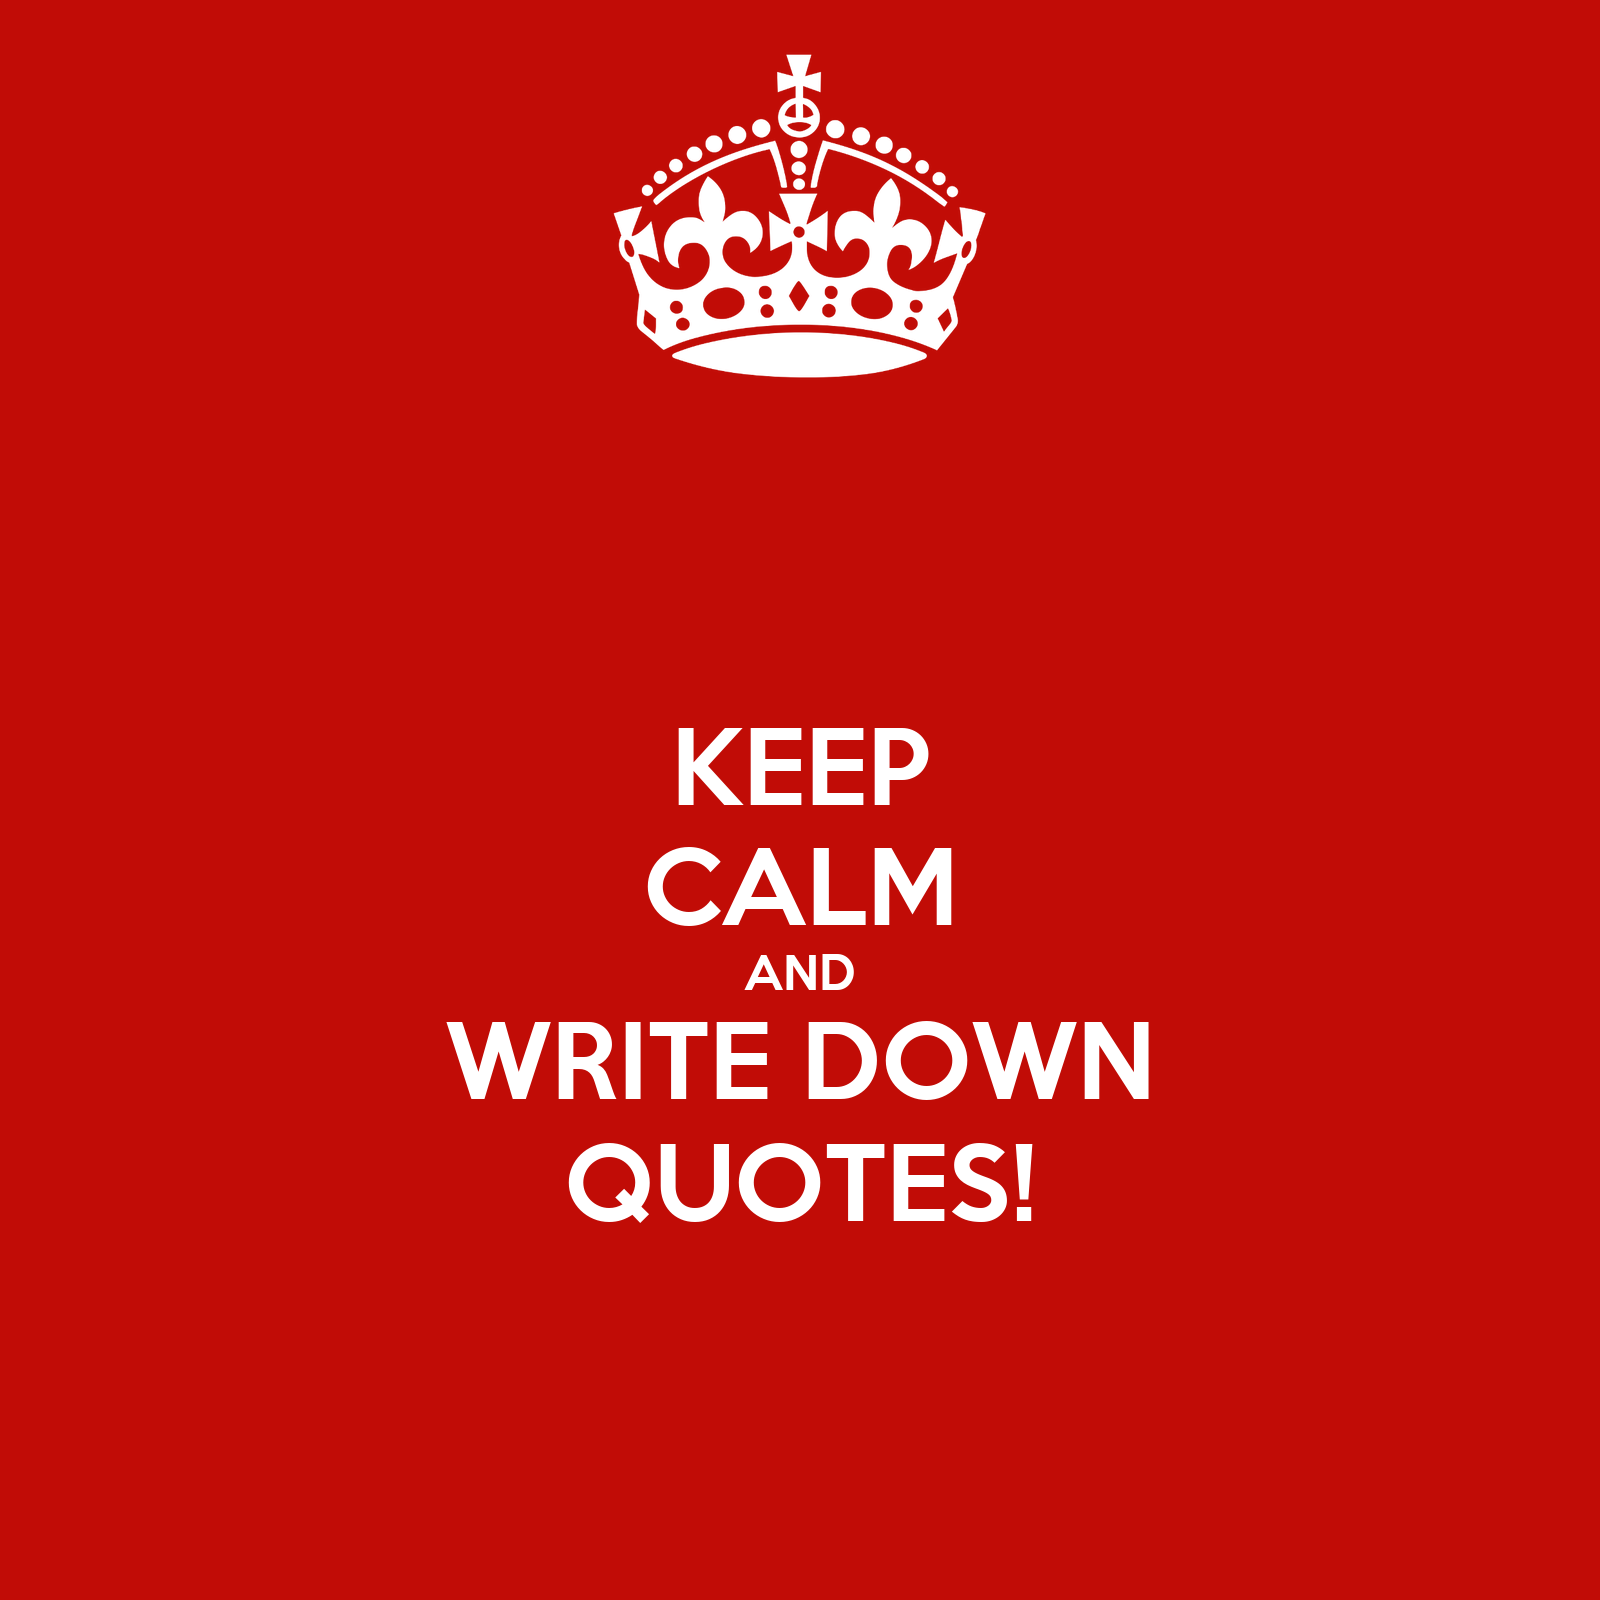 Quotes About Calmness In The Storm Keep Calm And Write Down Quotes